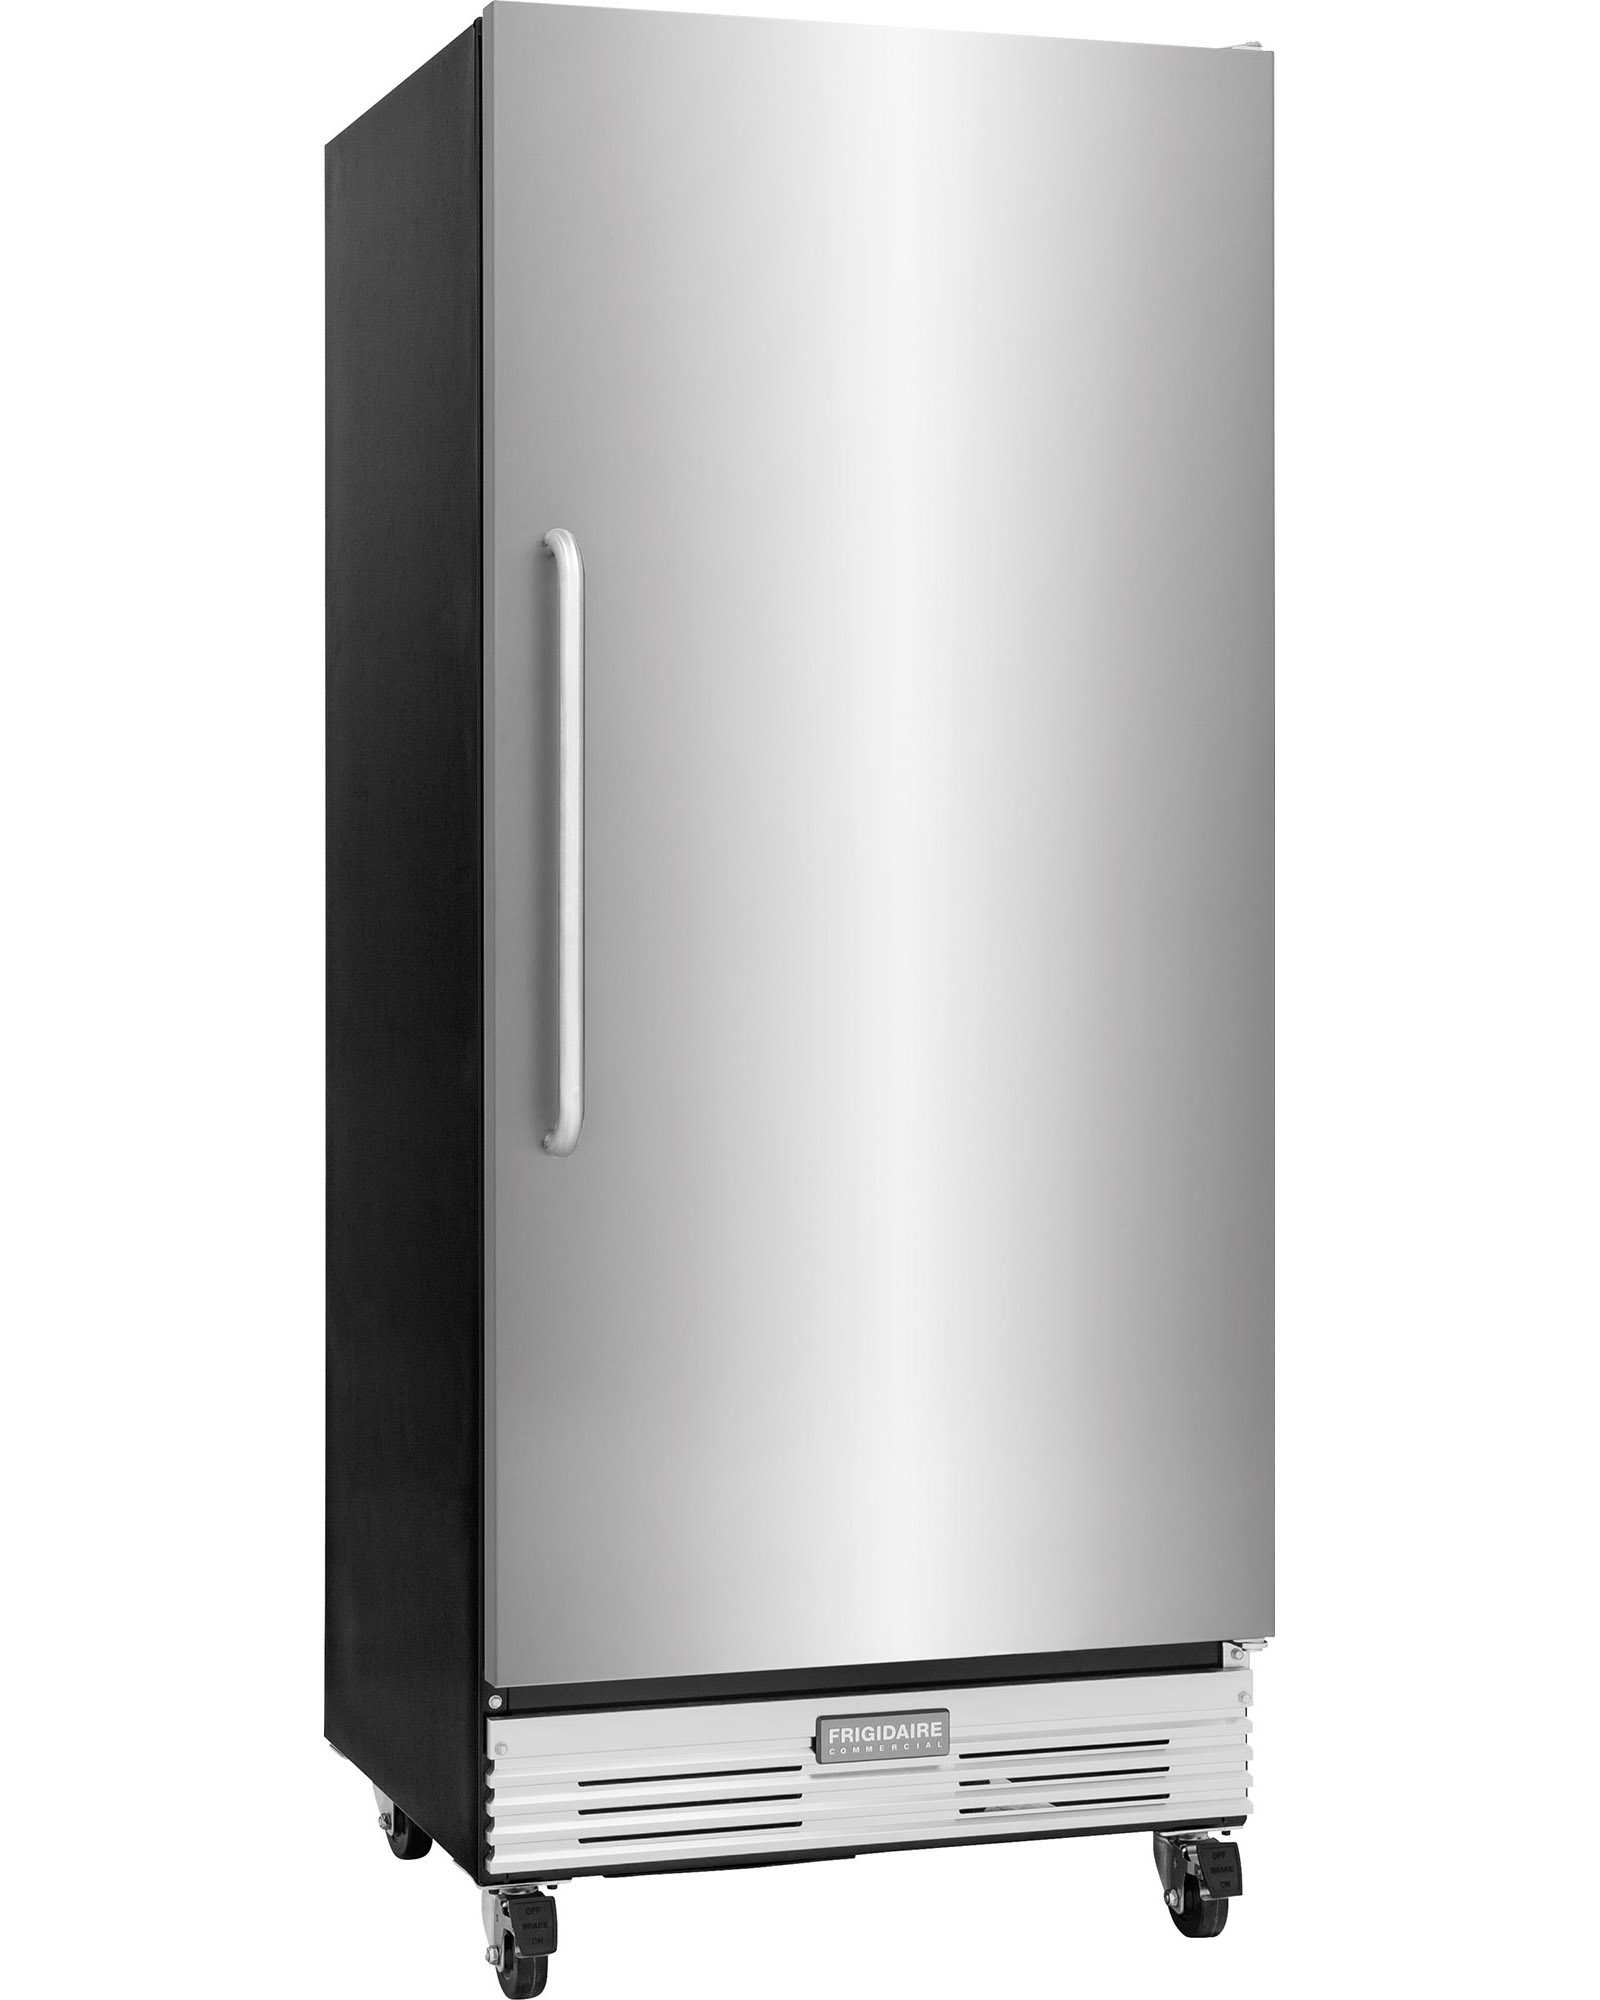 Frigidaire FCRS181RQB 17.9 cu. ft. Commercial Food Service Grade Refrigerator - Stainless Steel